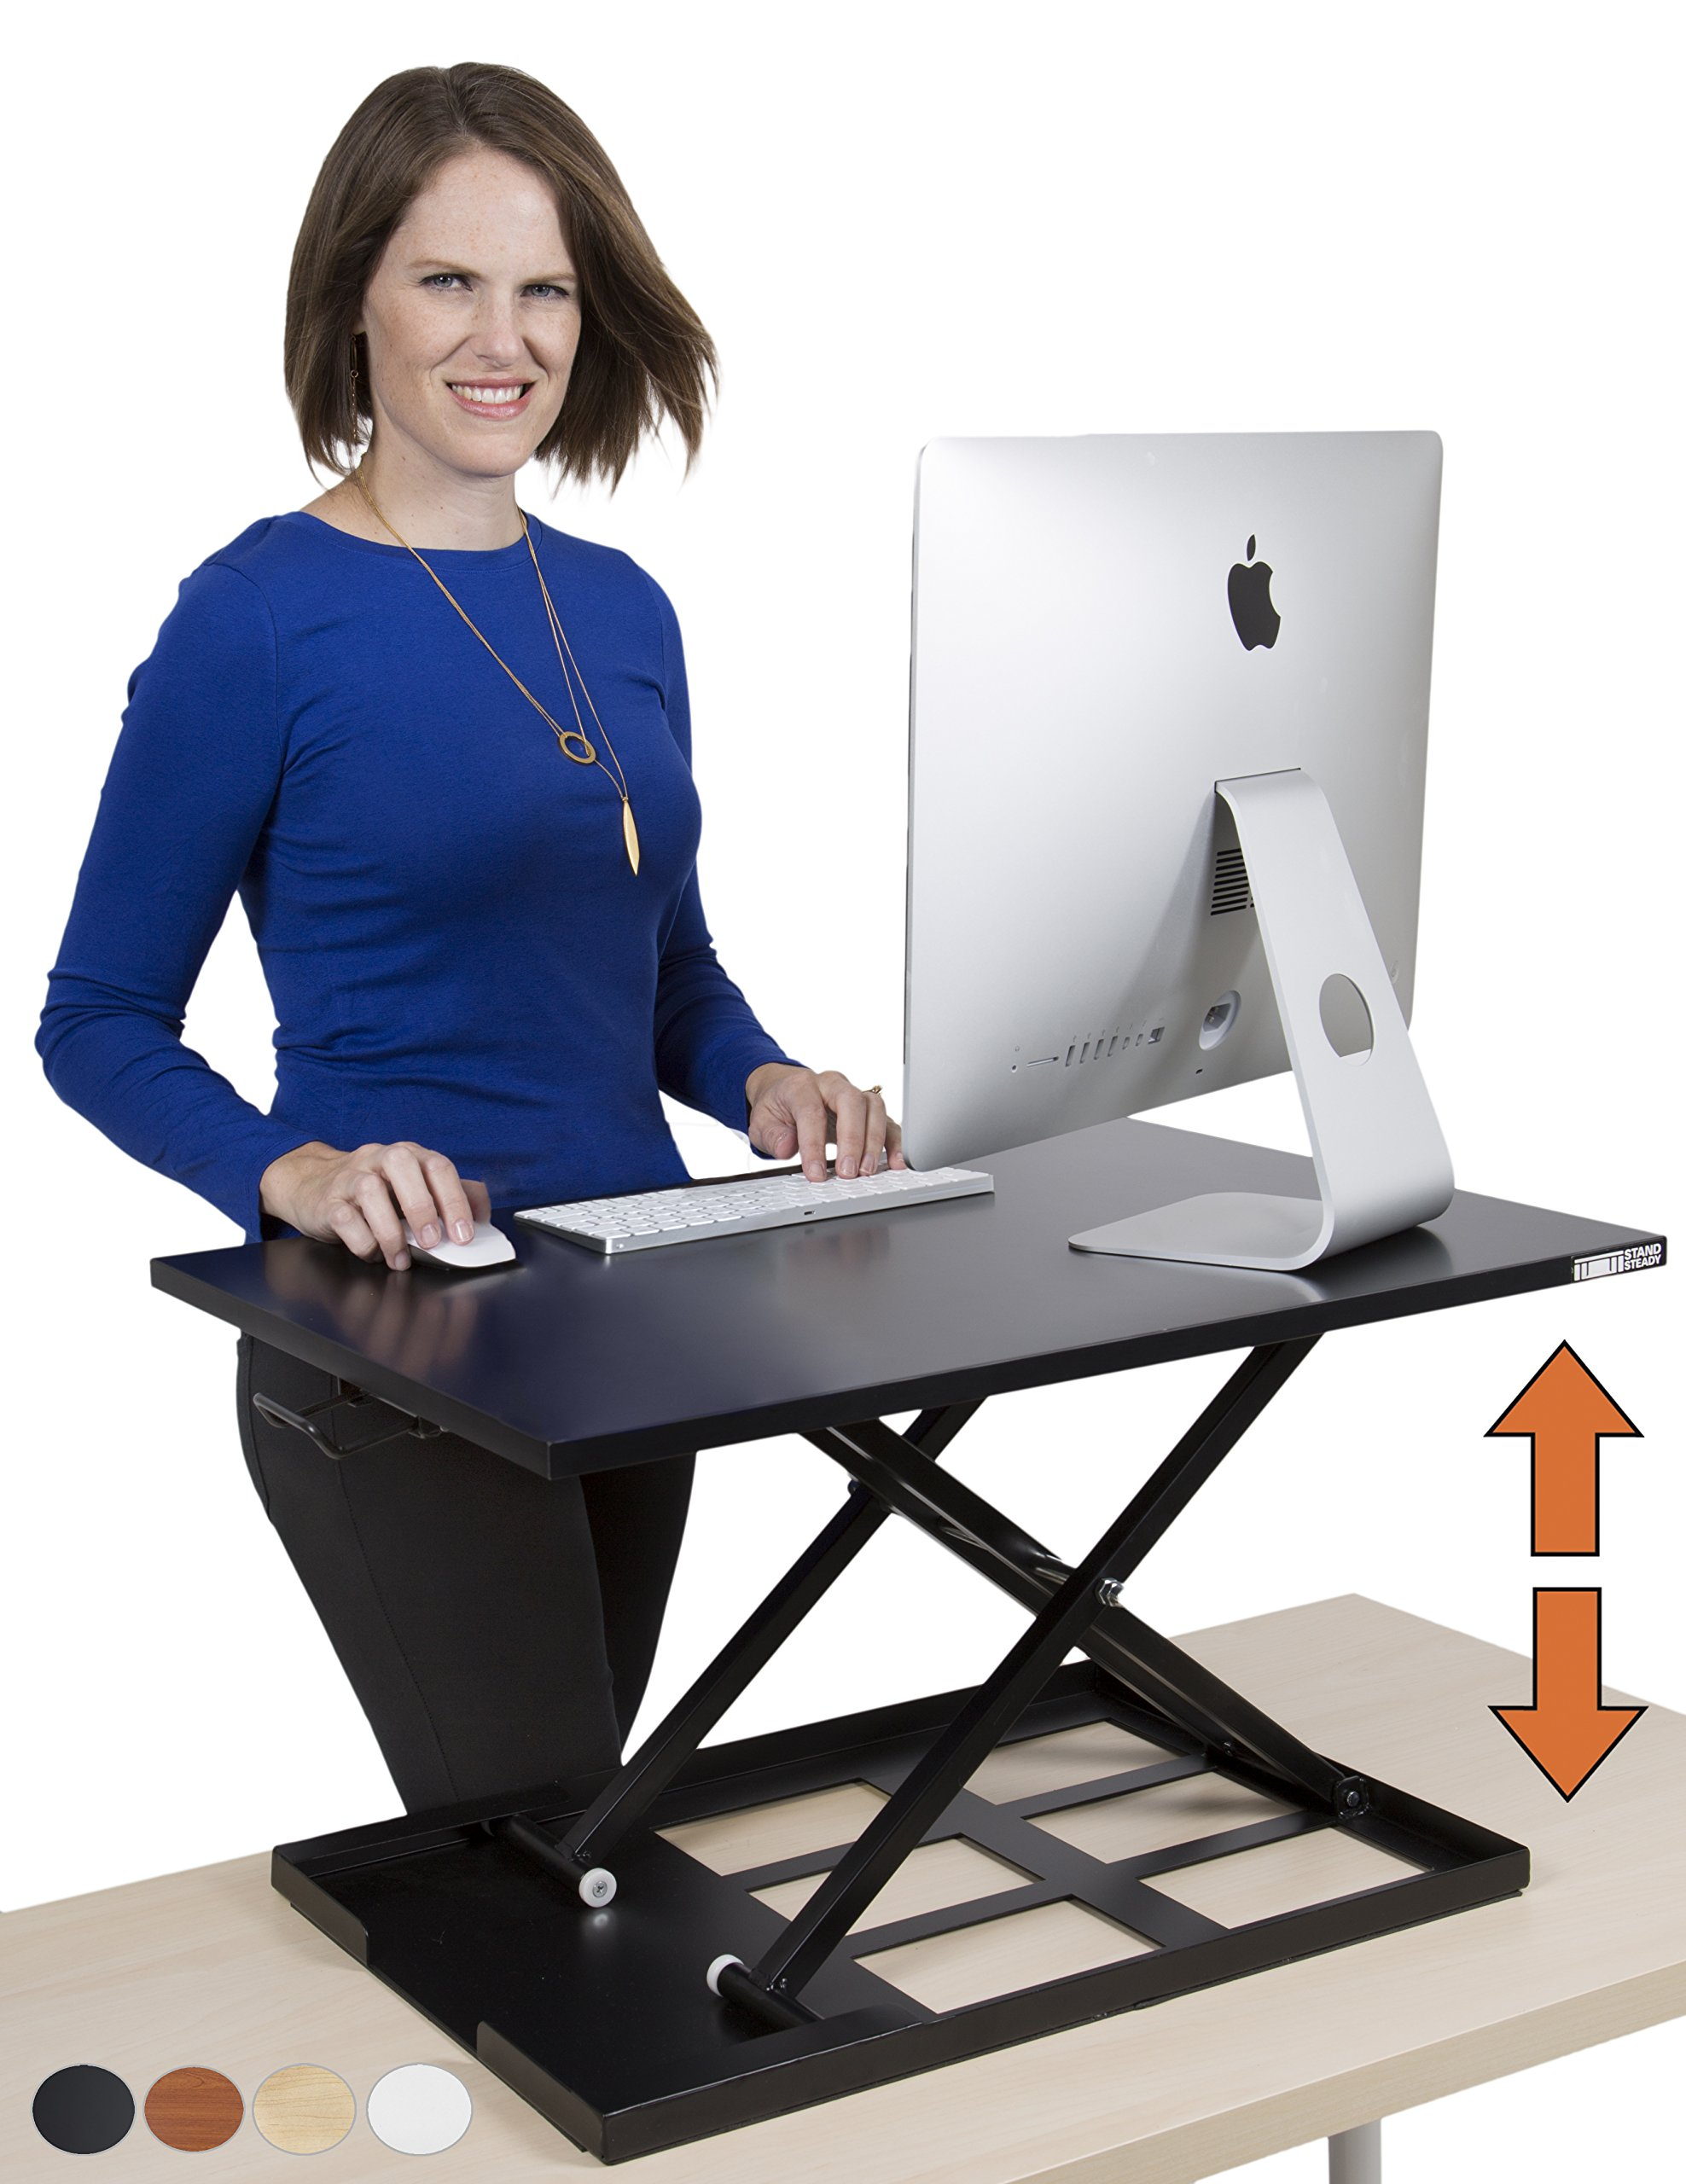 b height individual inwerk p desks schwarz en by masterlift sit product desk stand adjustable